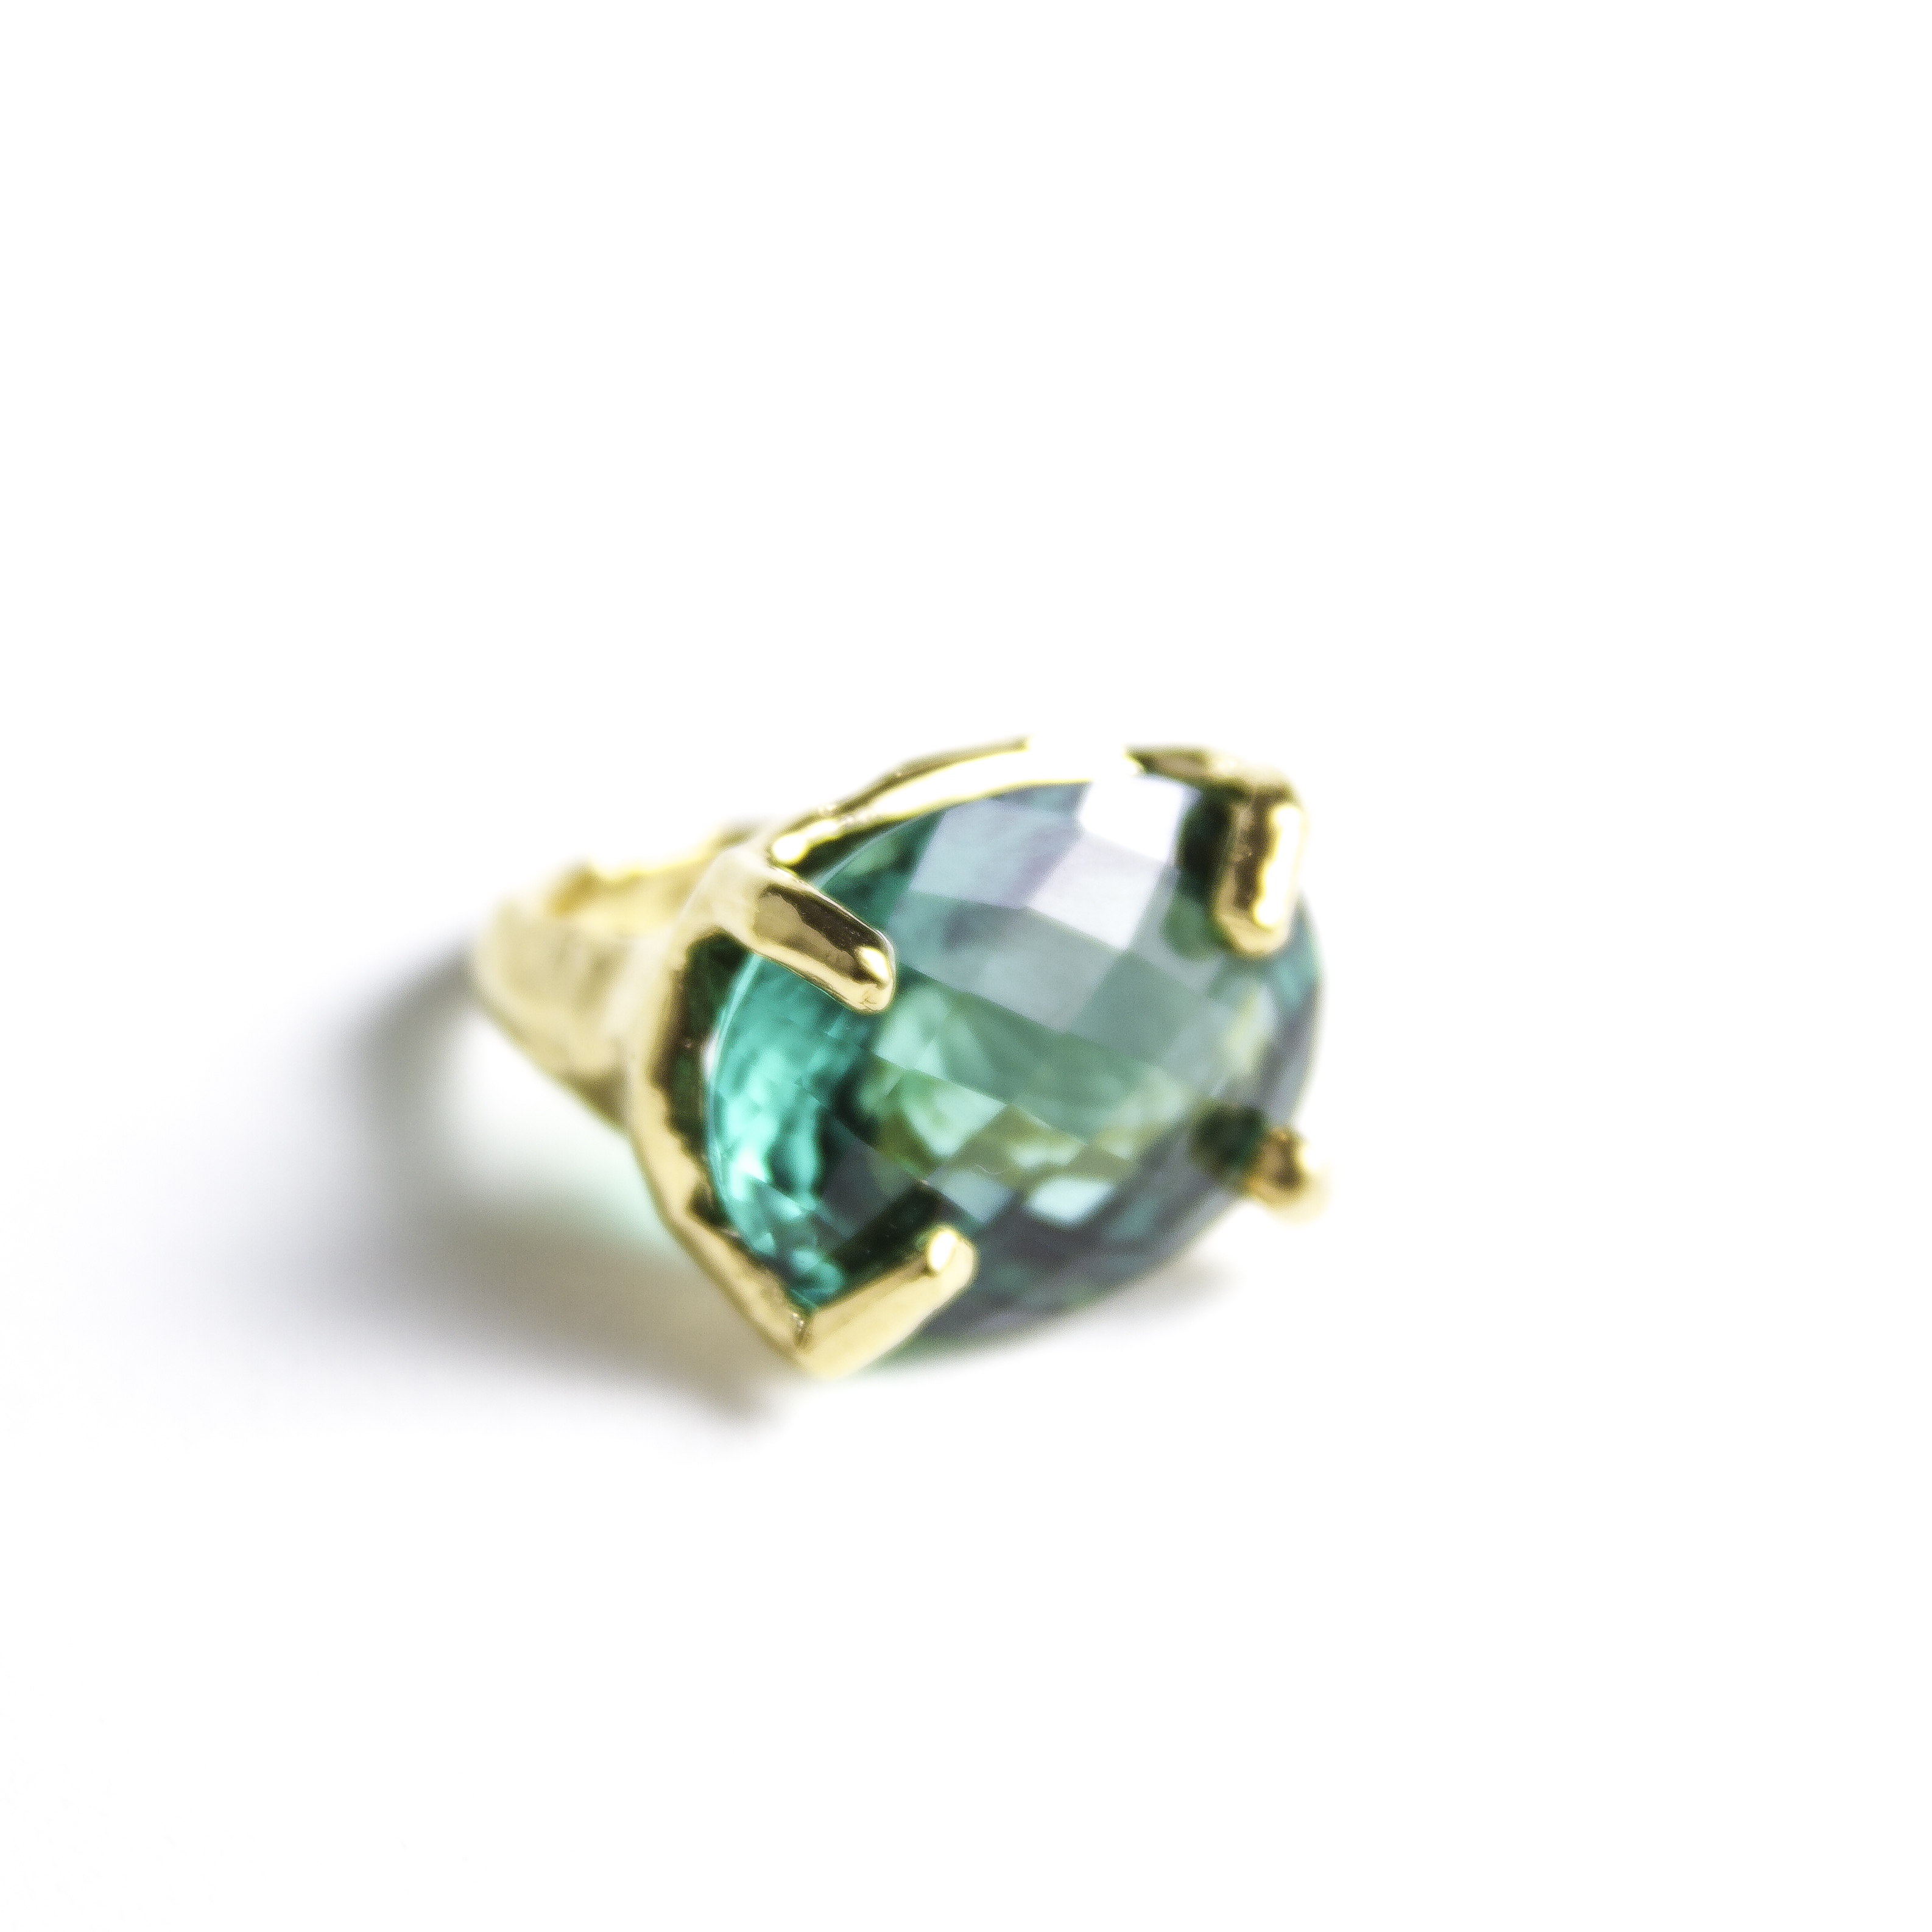 ... bronze custom please email for inquires category custom share this on: https://christinajervey.com/shop/turquoise-ring